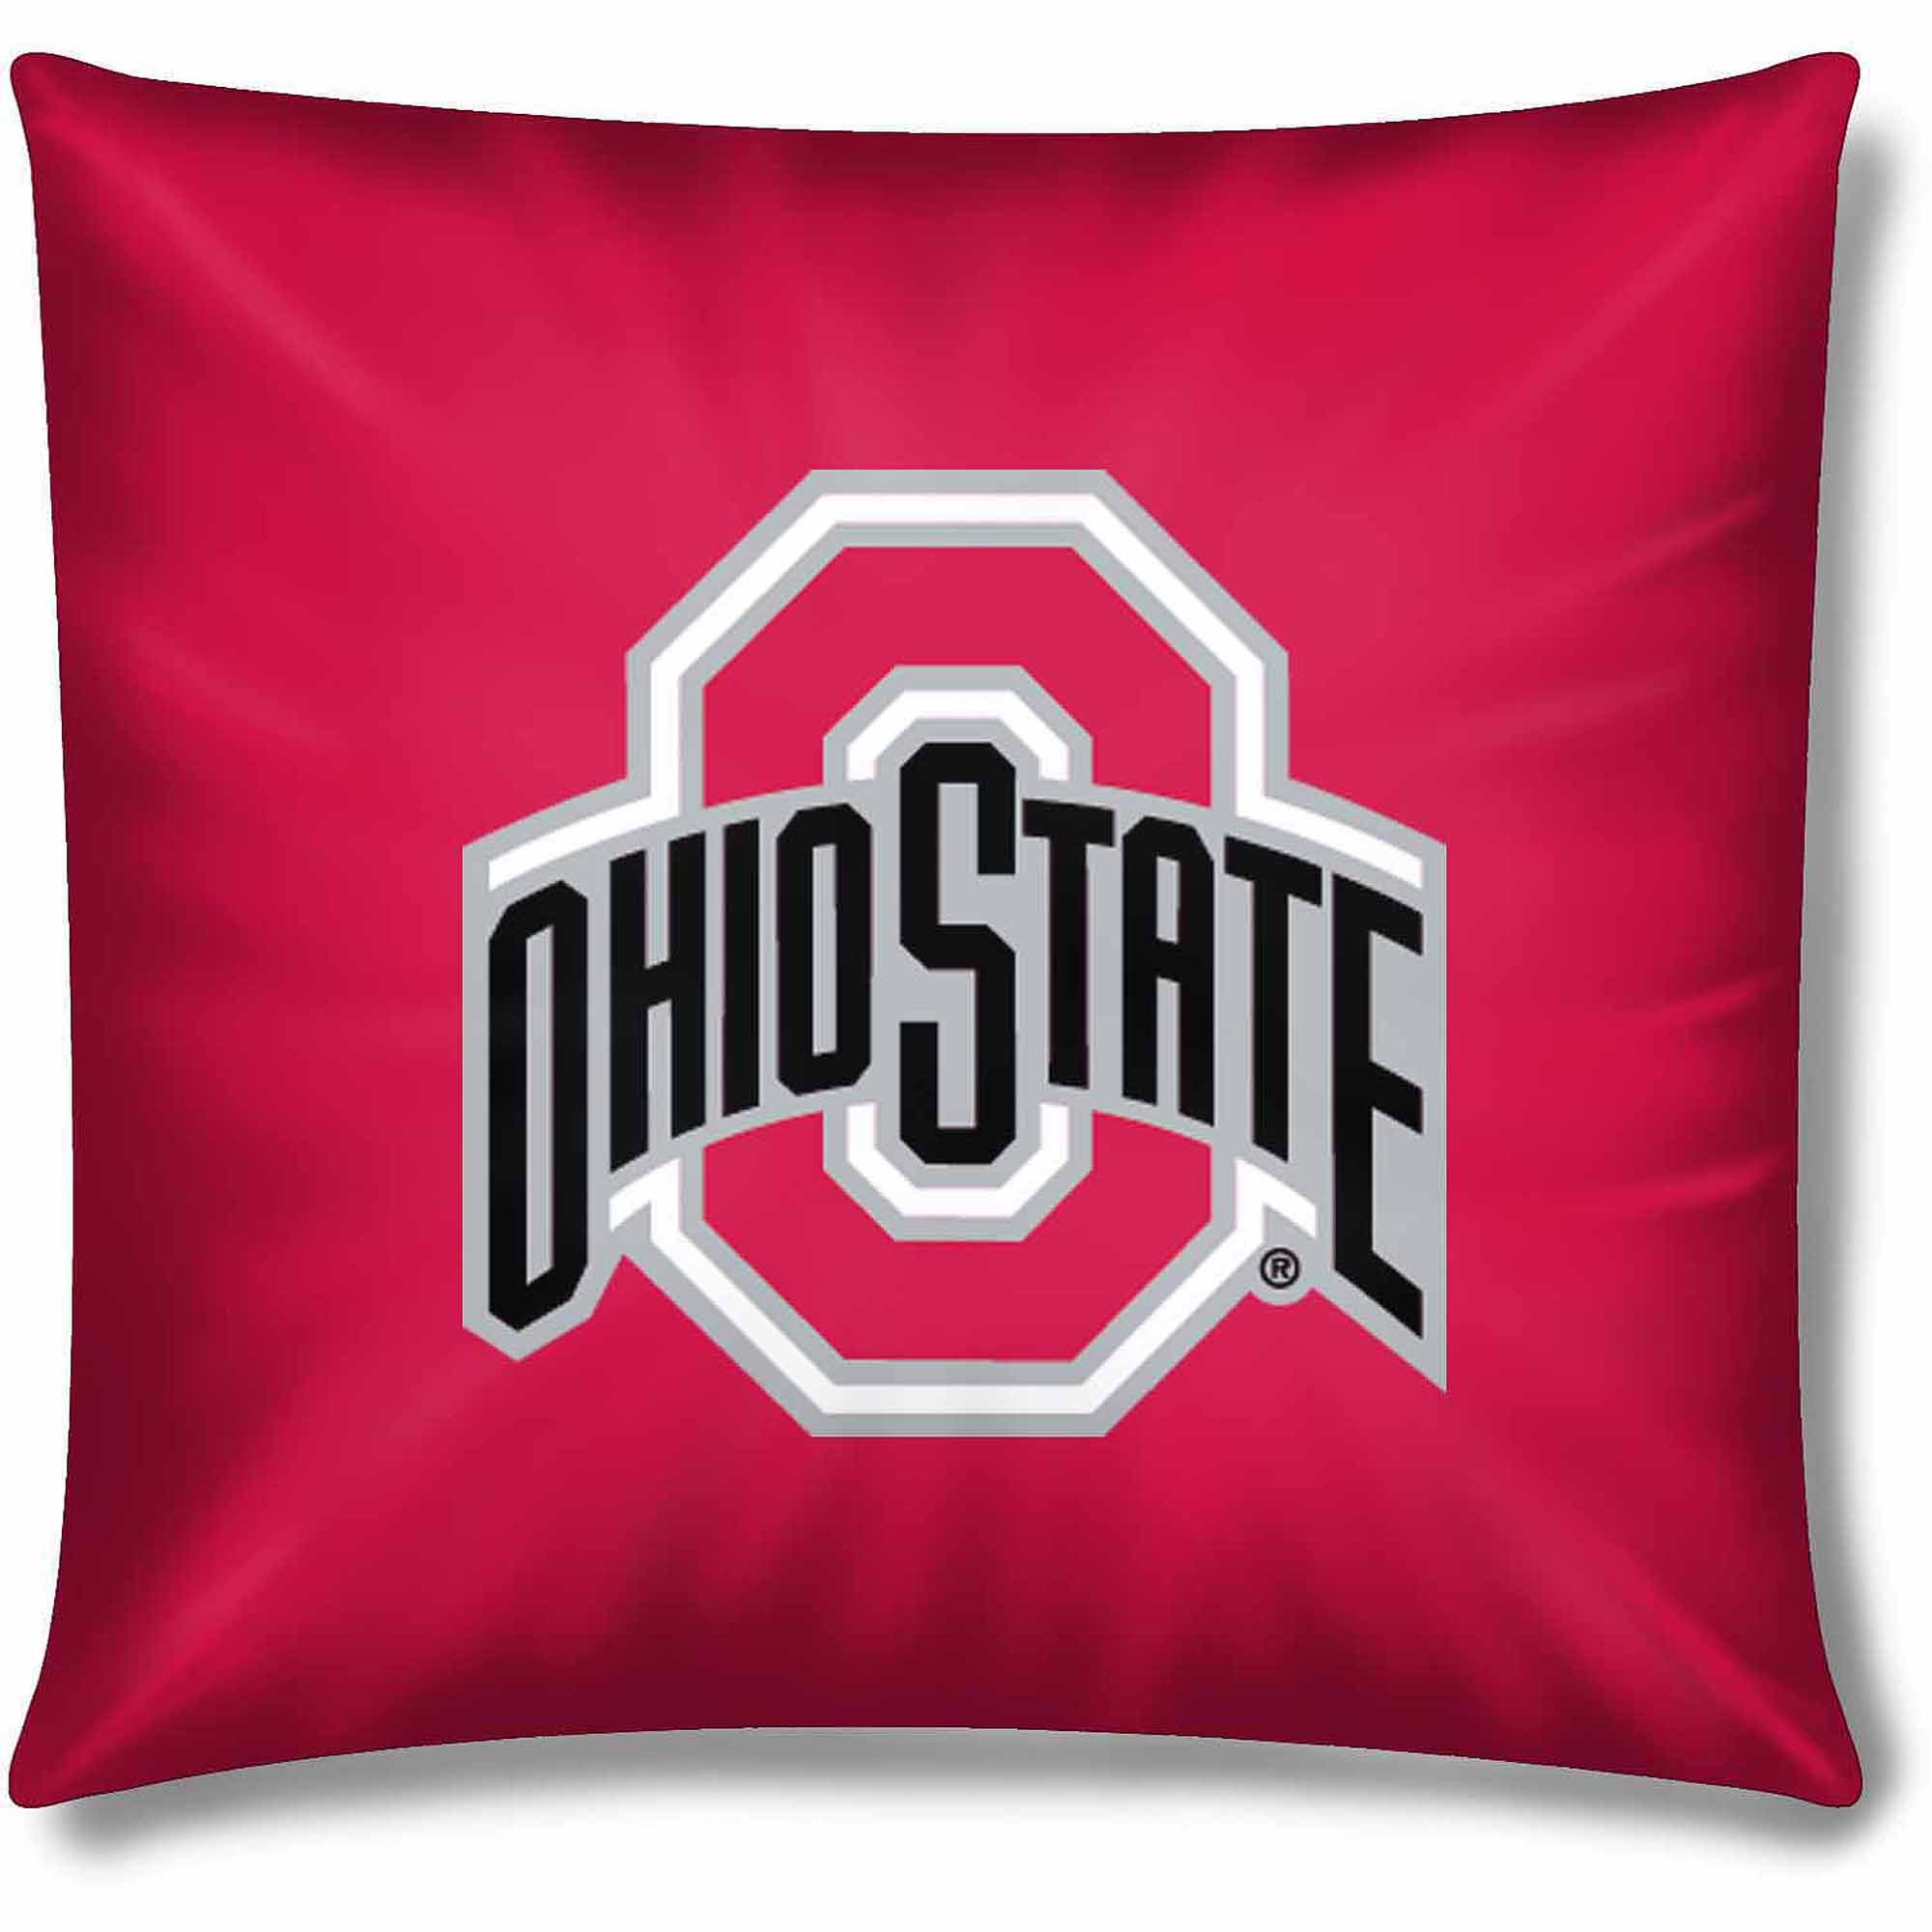 "Ohio State Official 15"" Toss Pillow"